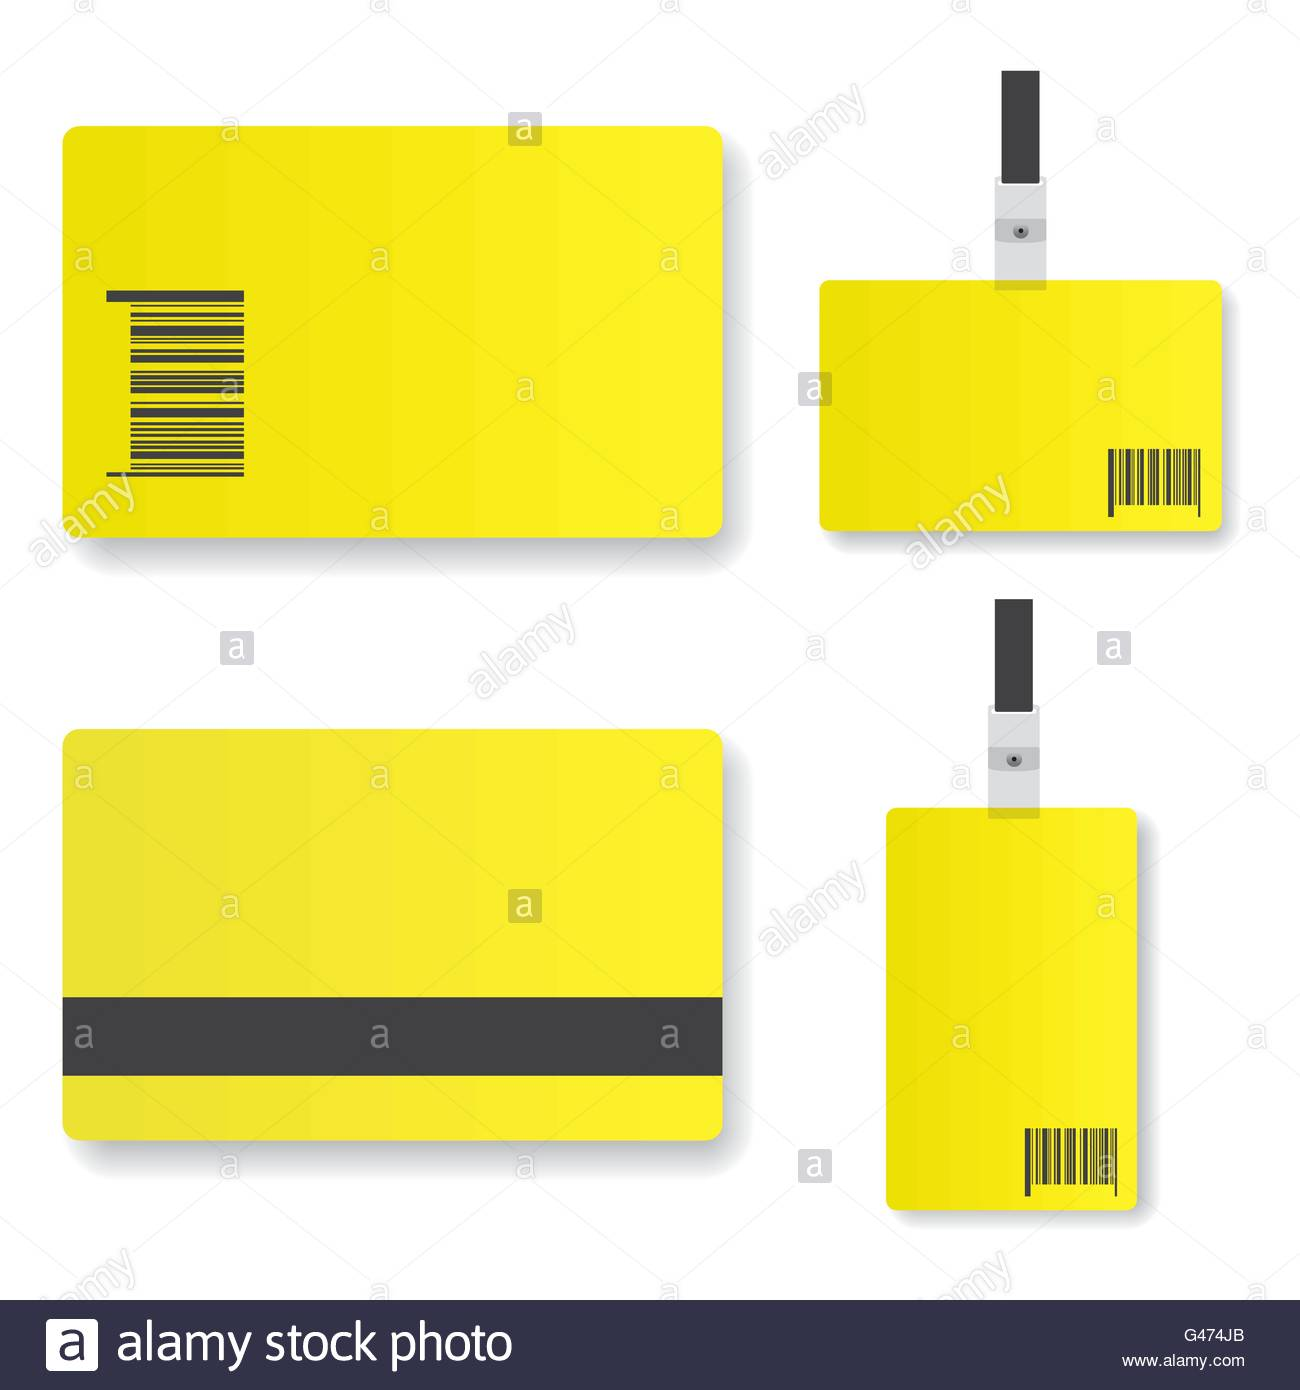 Blank yellow  id card illustration - Stock Image